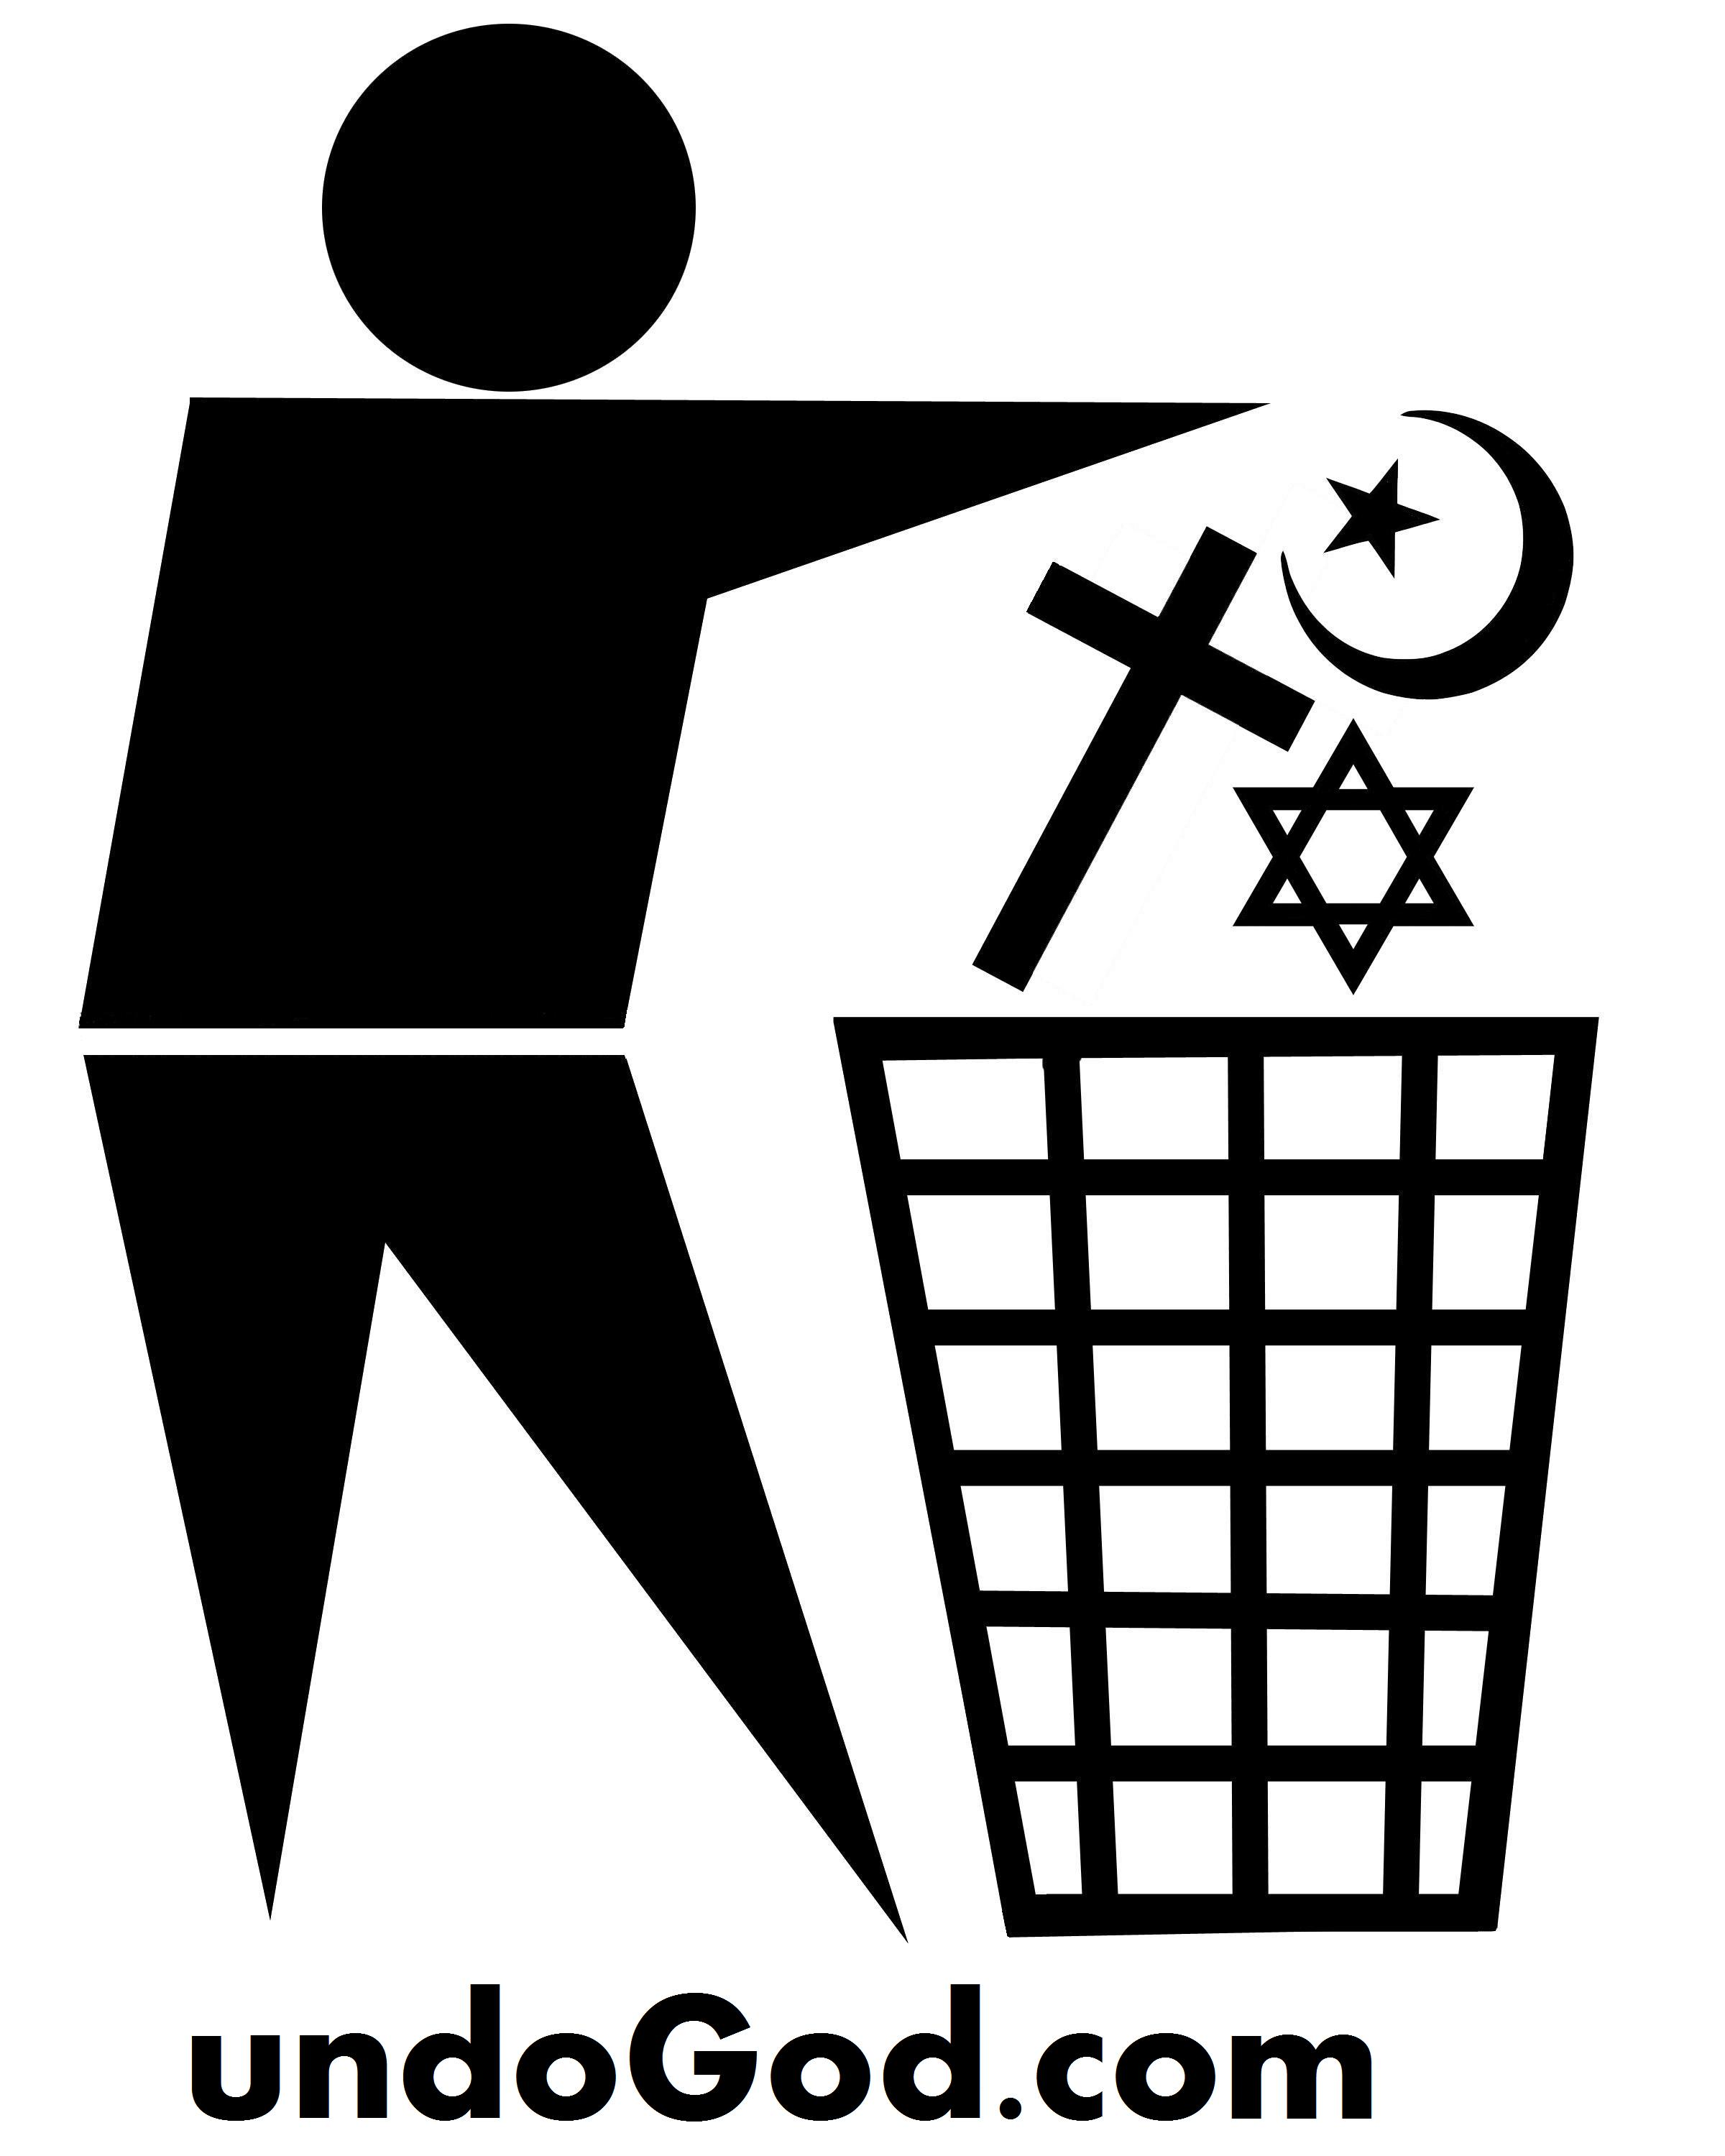 standard waste bin sign with religious symbols being discarded